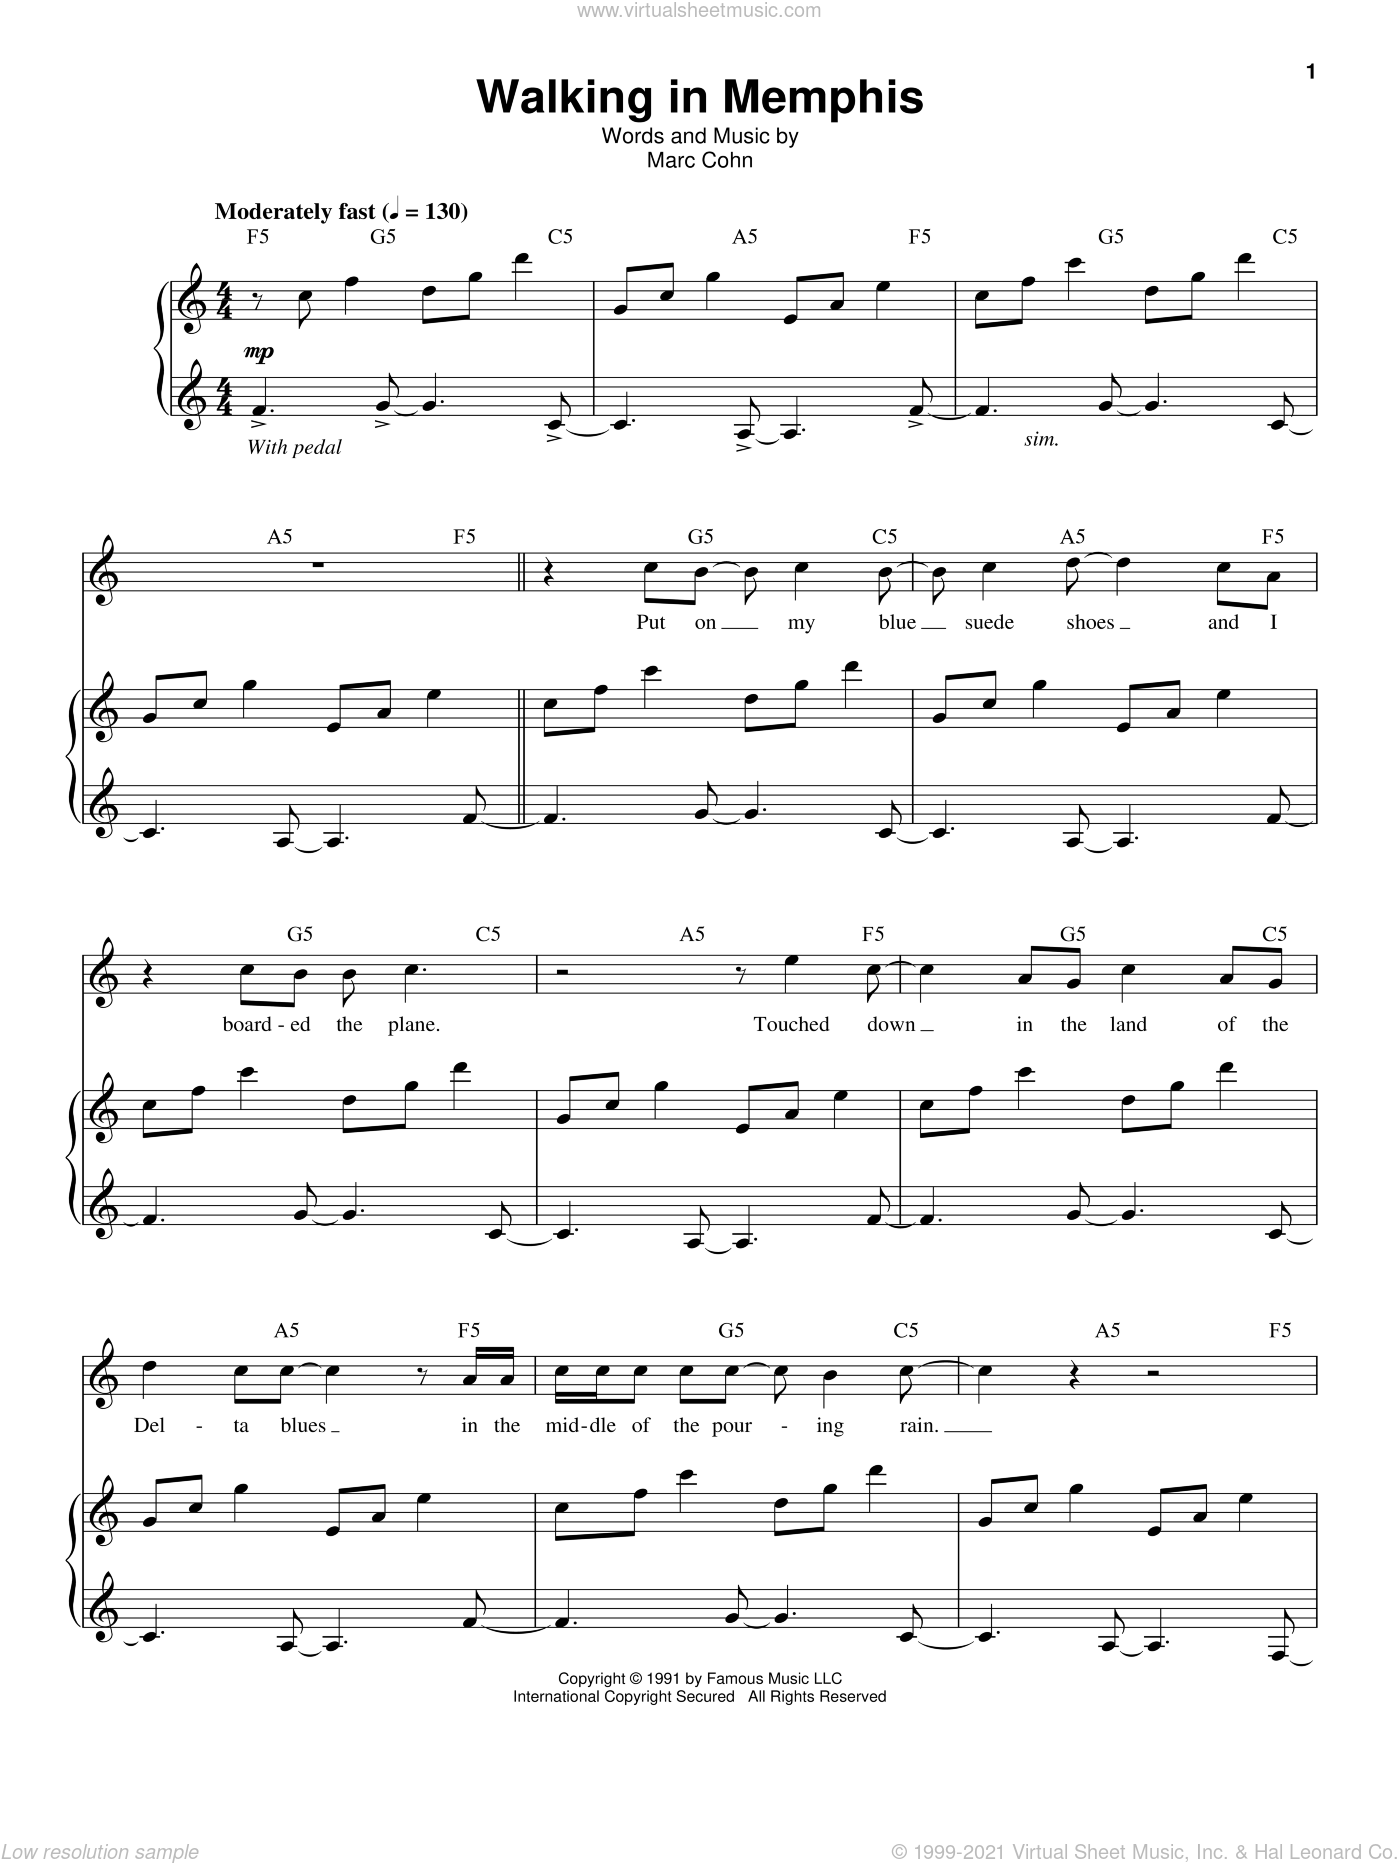 Walking In Memphis sheet music for voice and piano by Marc Cohn. Score Image Preview.